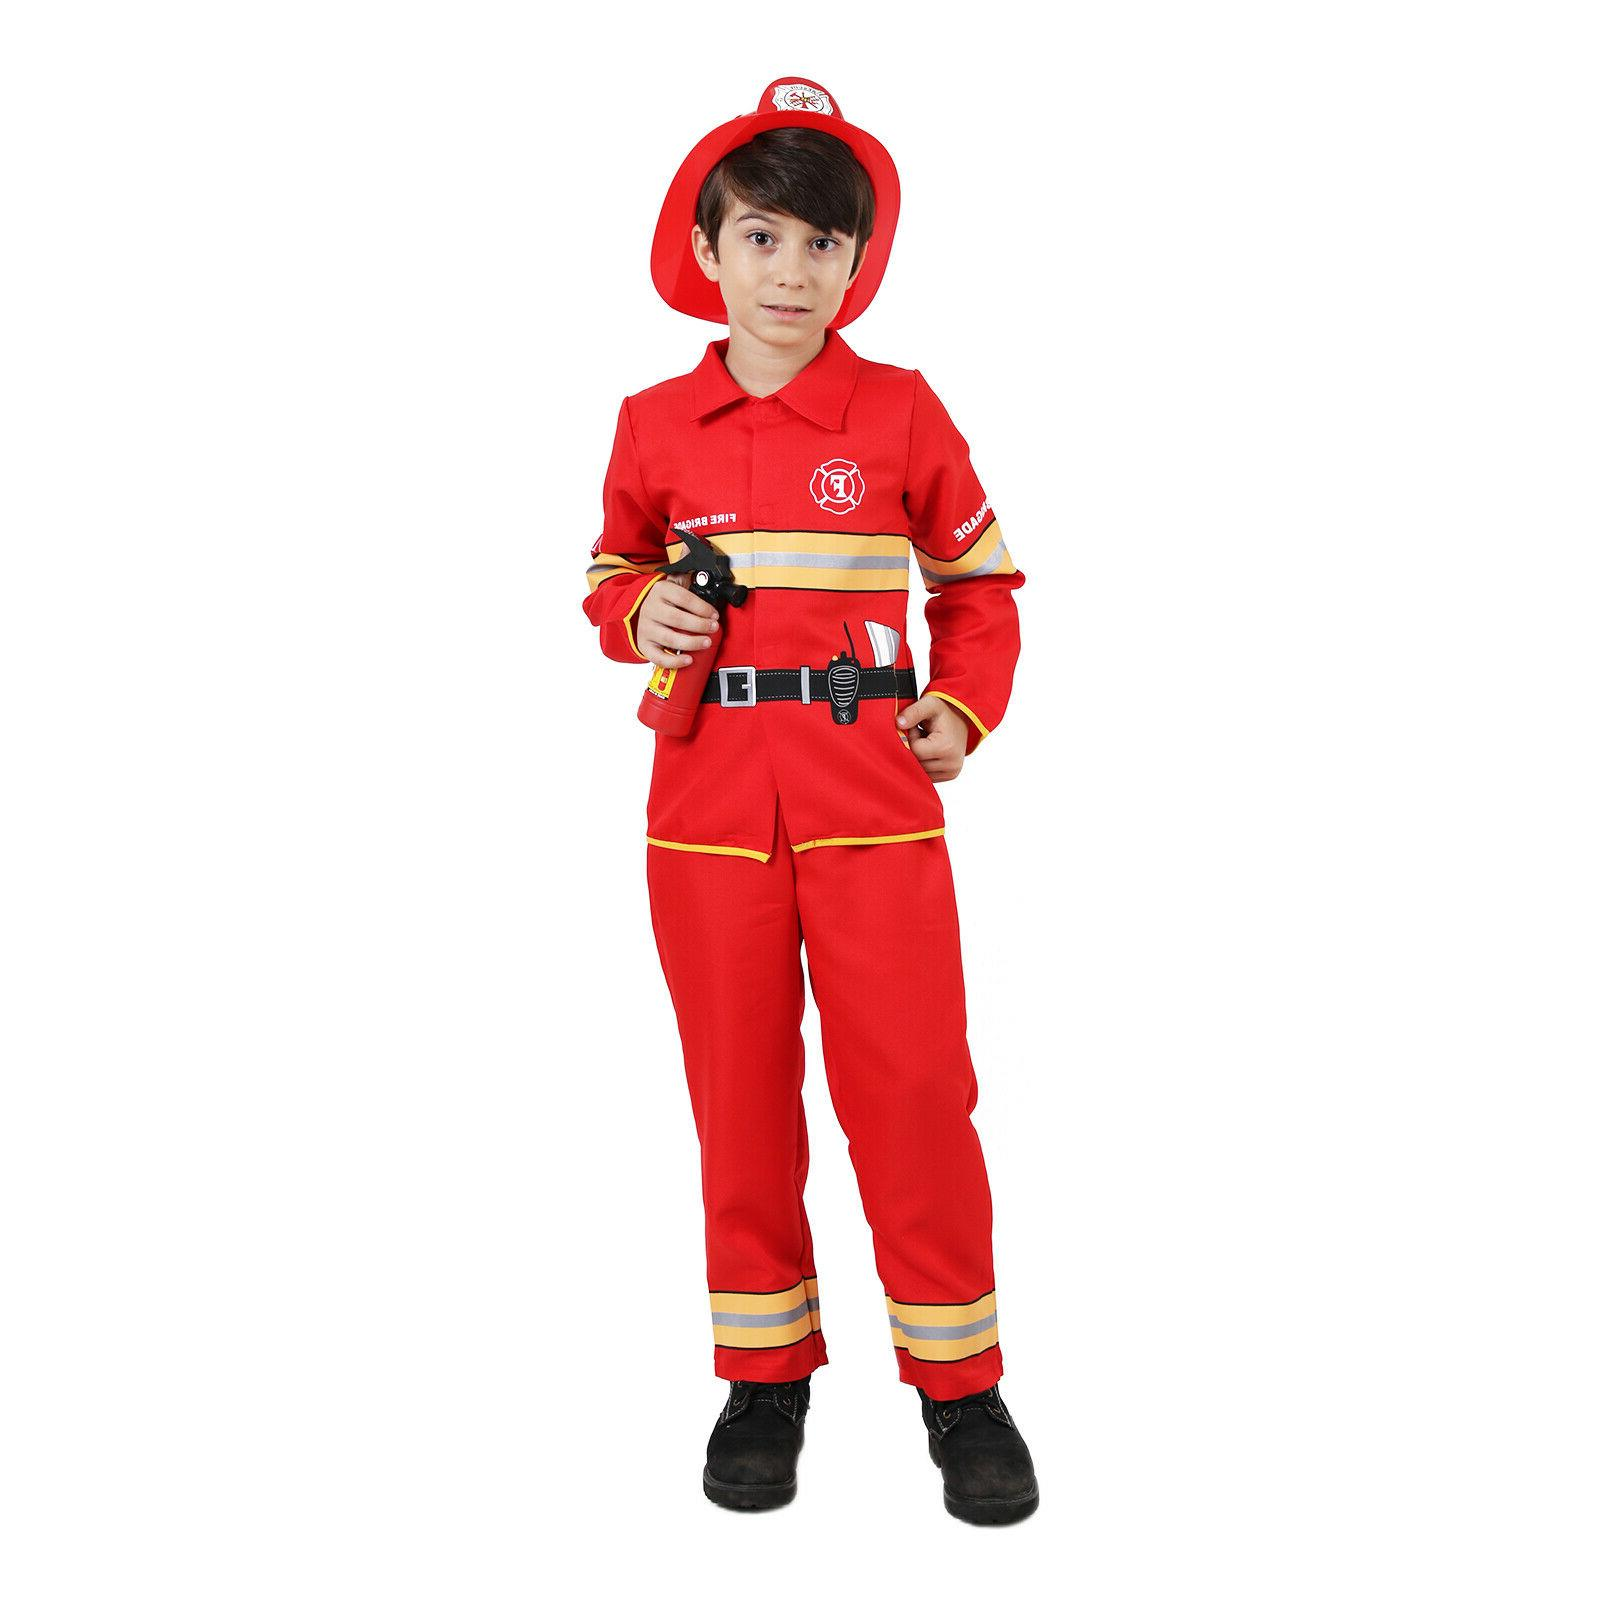 🔥Boys Fireman Costume Kids Fighter Role Play Uniform